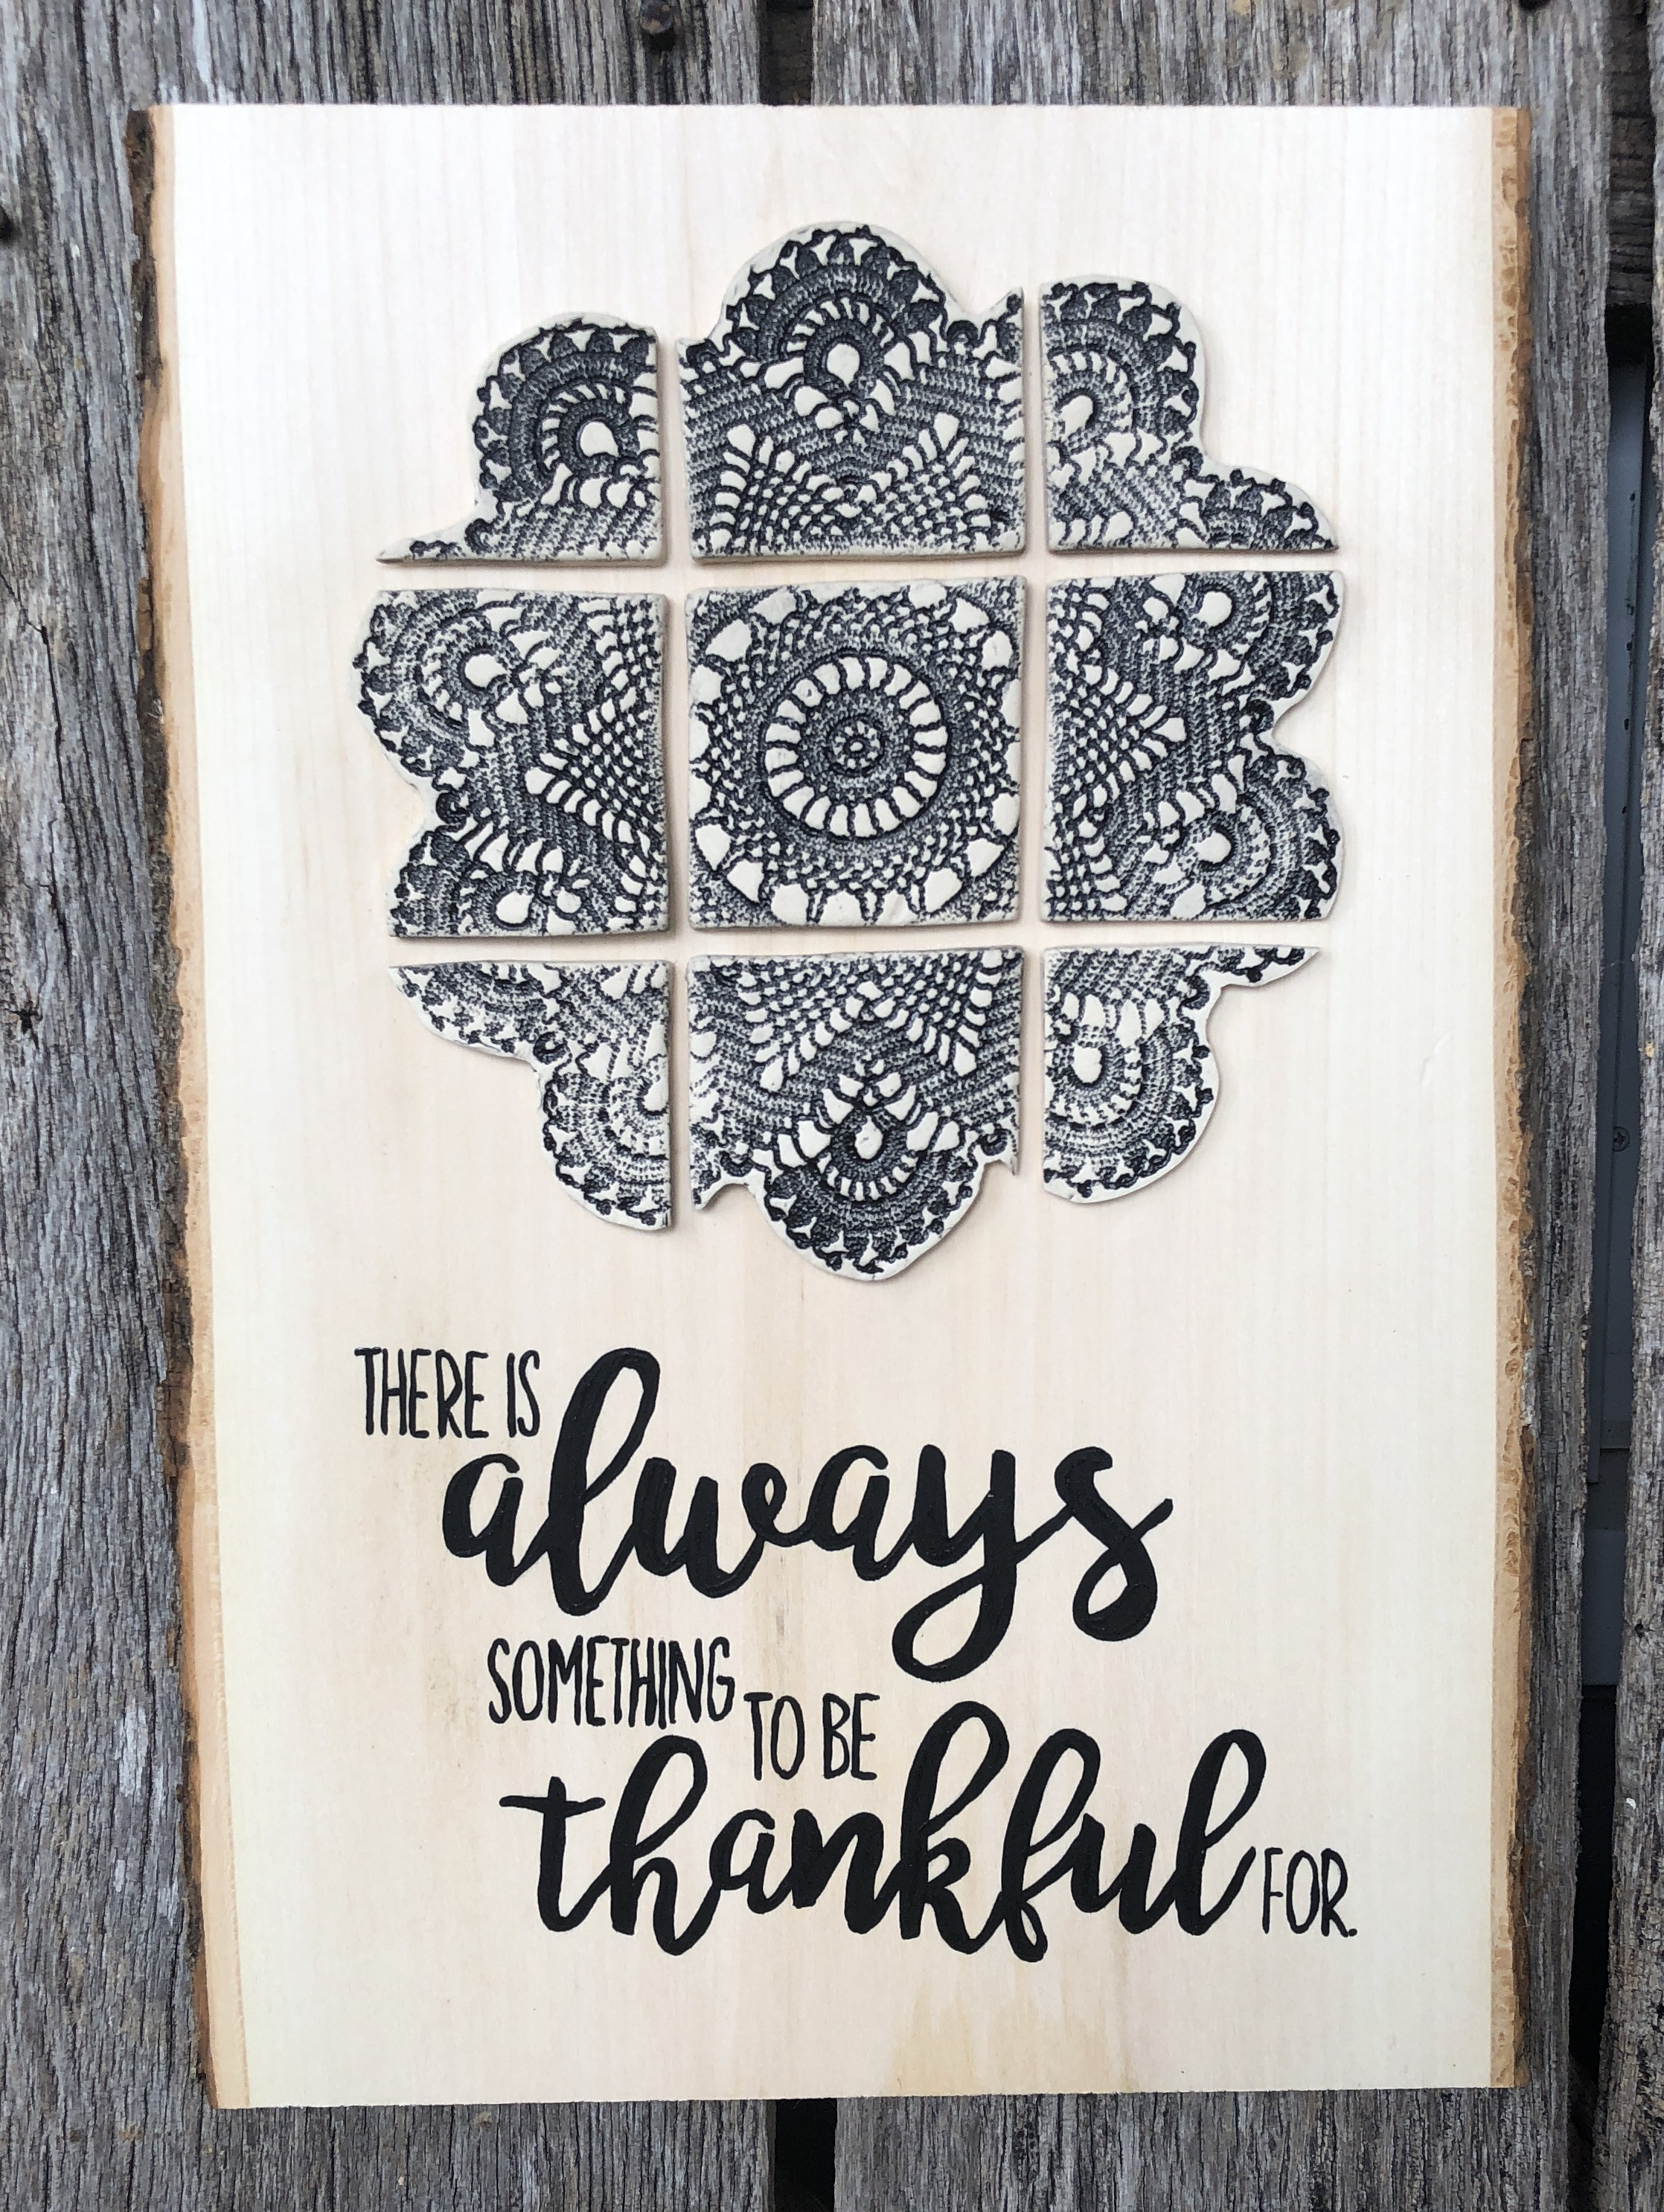 - it's true. there IS always something to be thankful for.and i'm thankful YOU are here. enjoy exploring, and if you like what you see, you can follow me on instagram, visit my shop, or drop me a line. i'd love to hear from you!